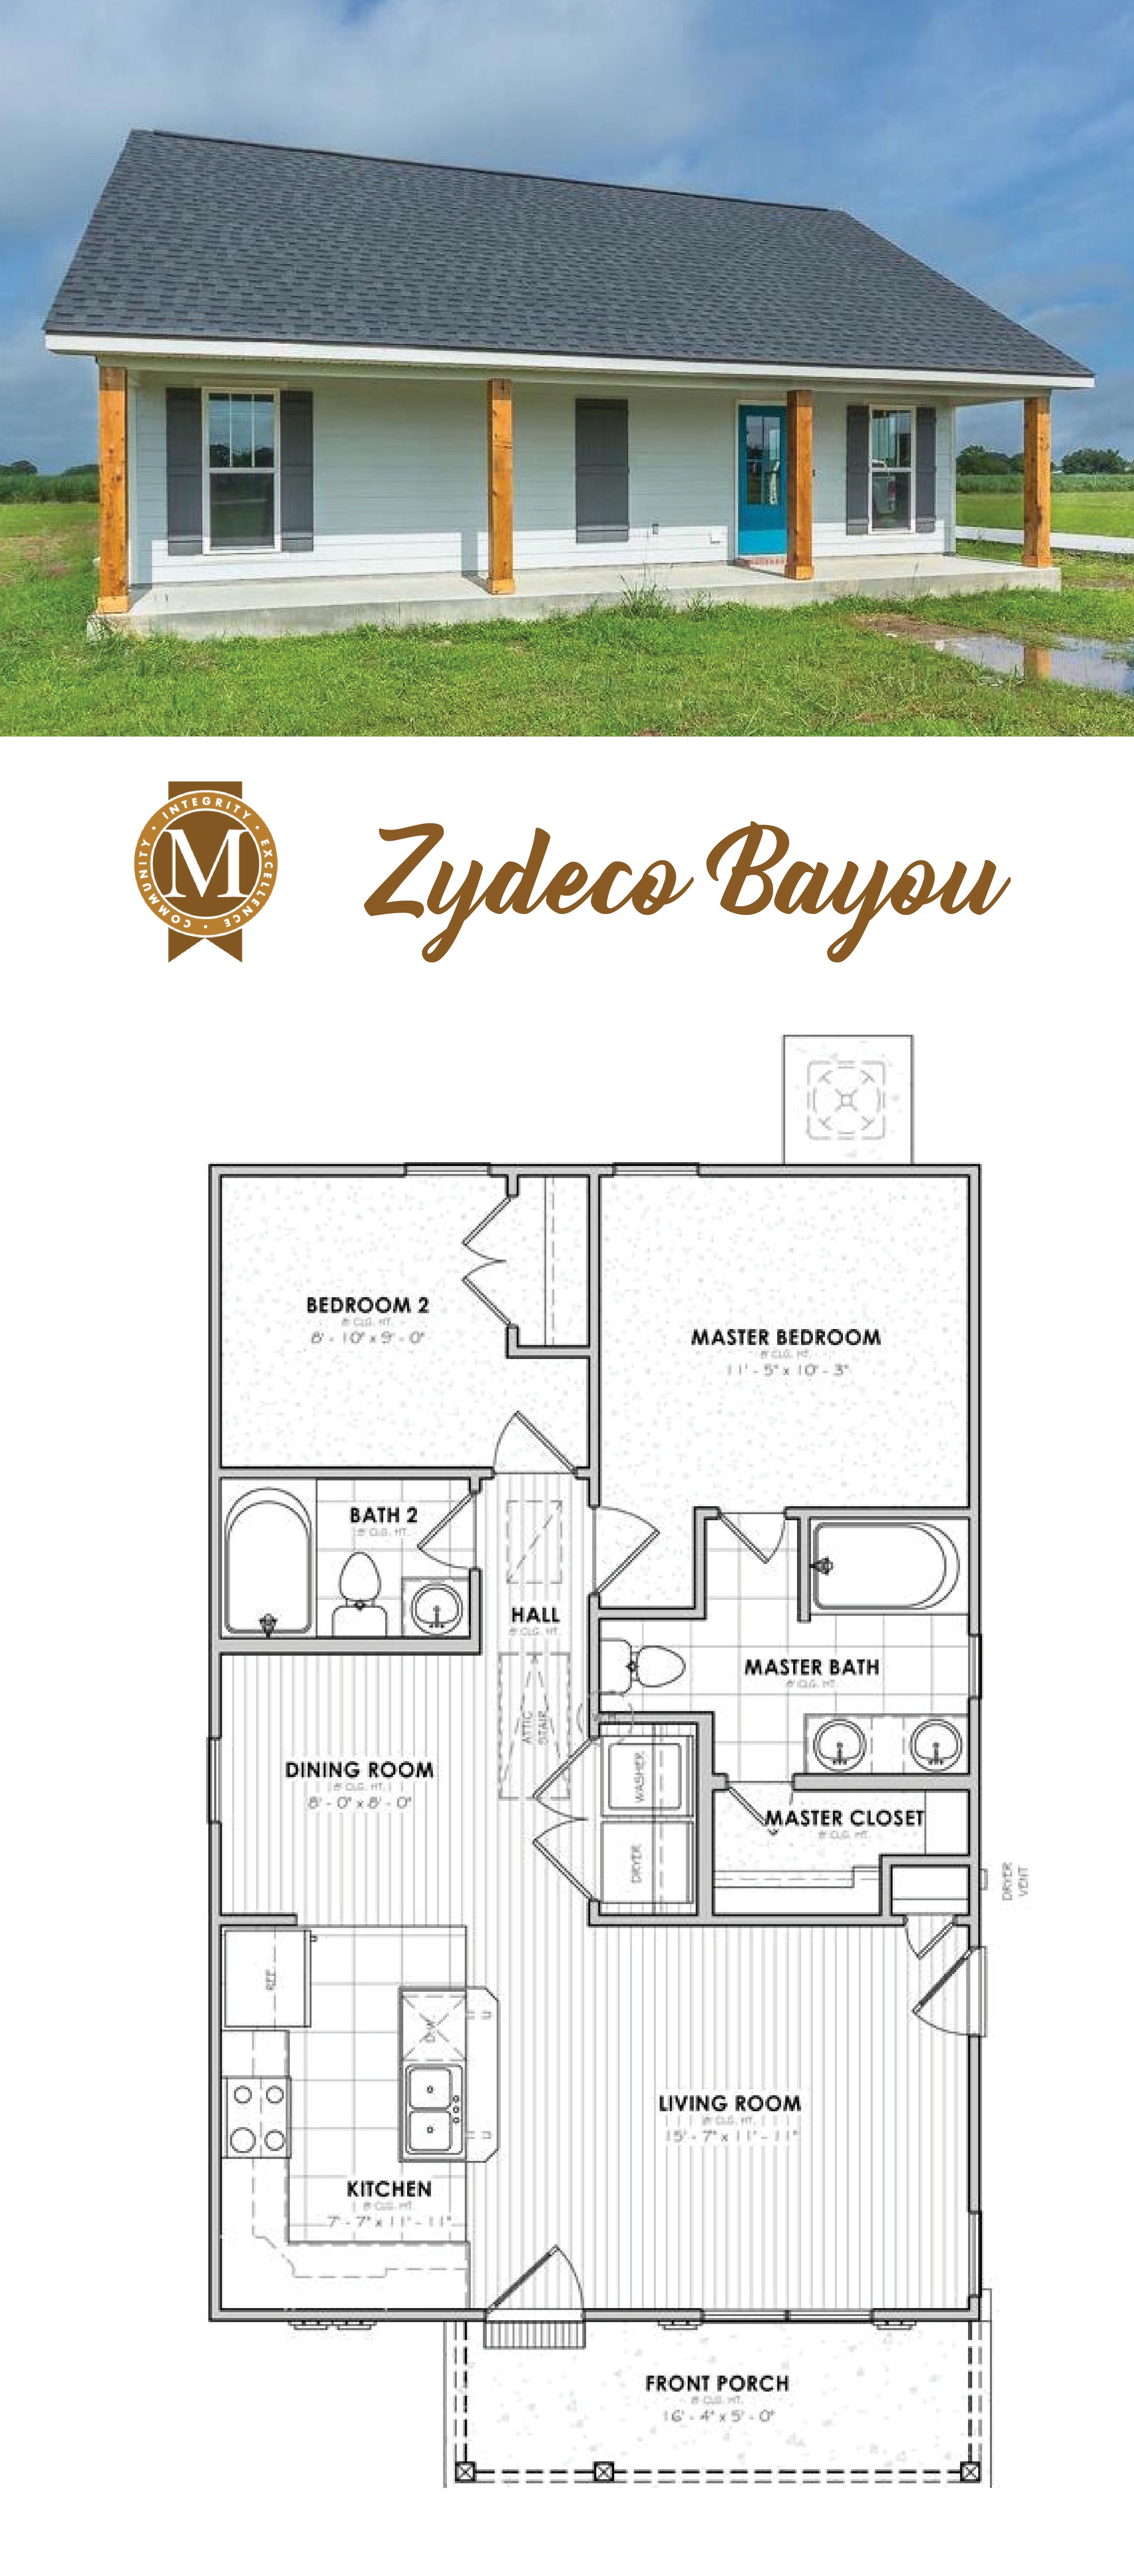 Living Sq Ft 864 Bedrooms 2 Baths 2 Baton Rouge Lake Charles Lafayette Louisiana House Plans House Layouts Tiny House Plans